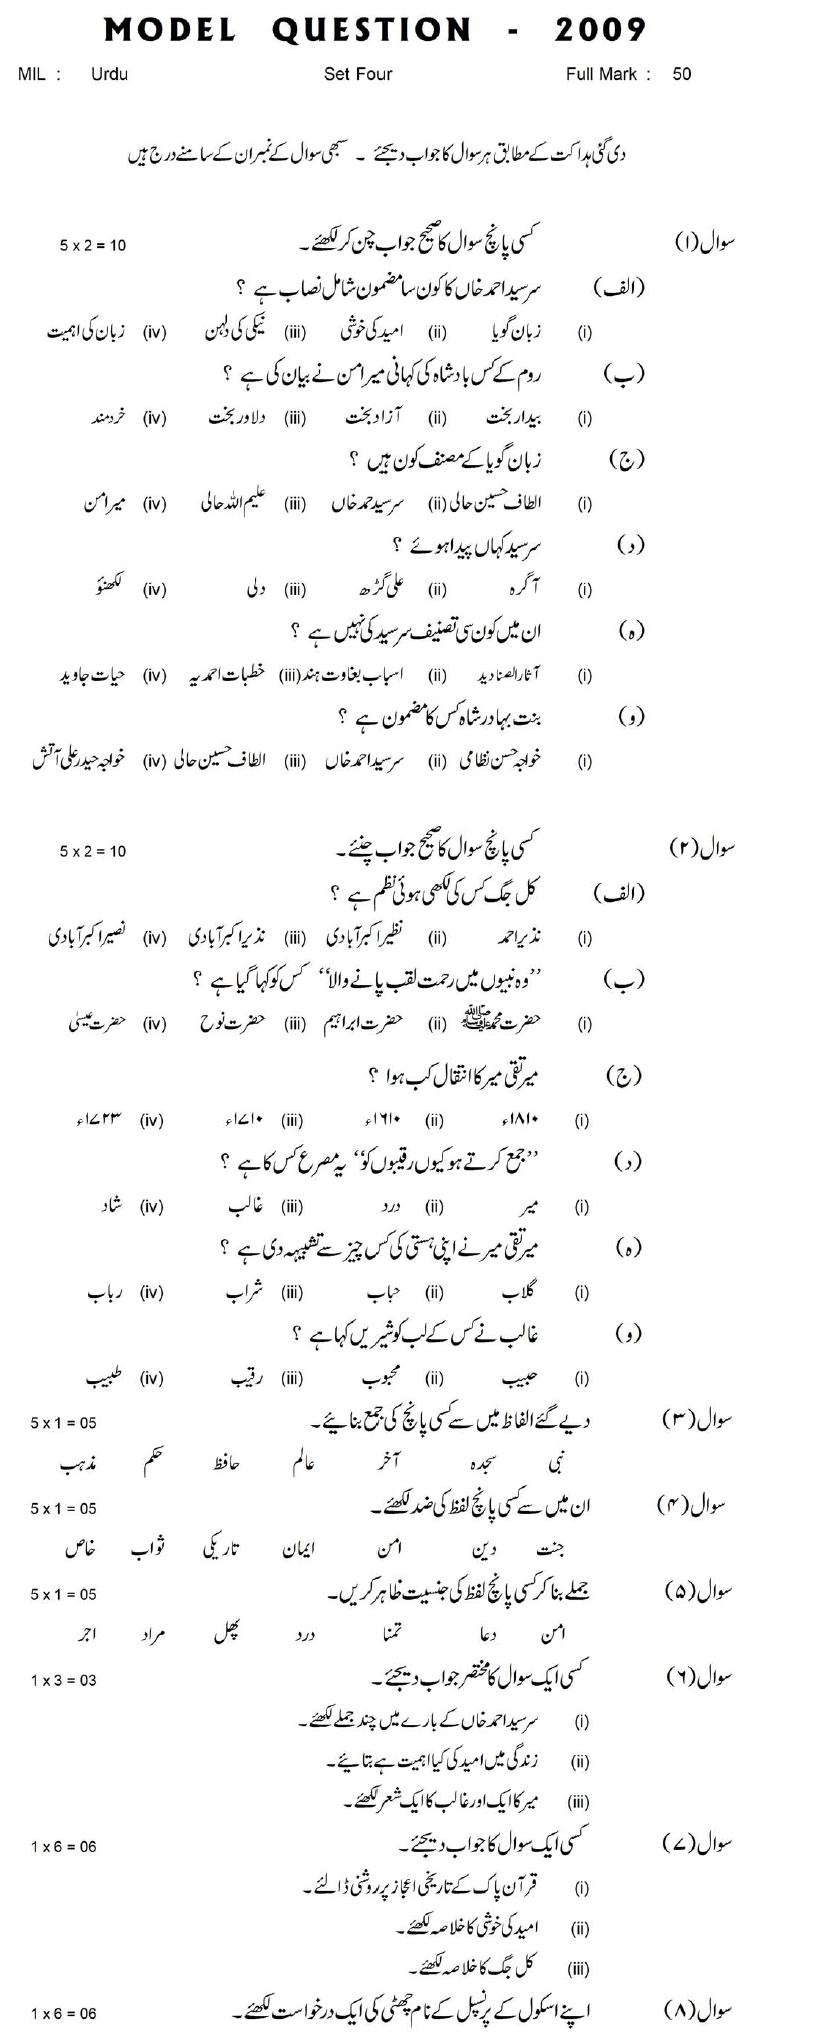 Bihar Board Class XI Humanities Model Question Papers - Urdu